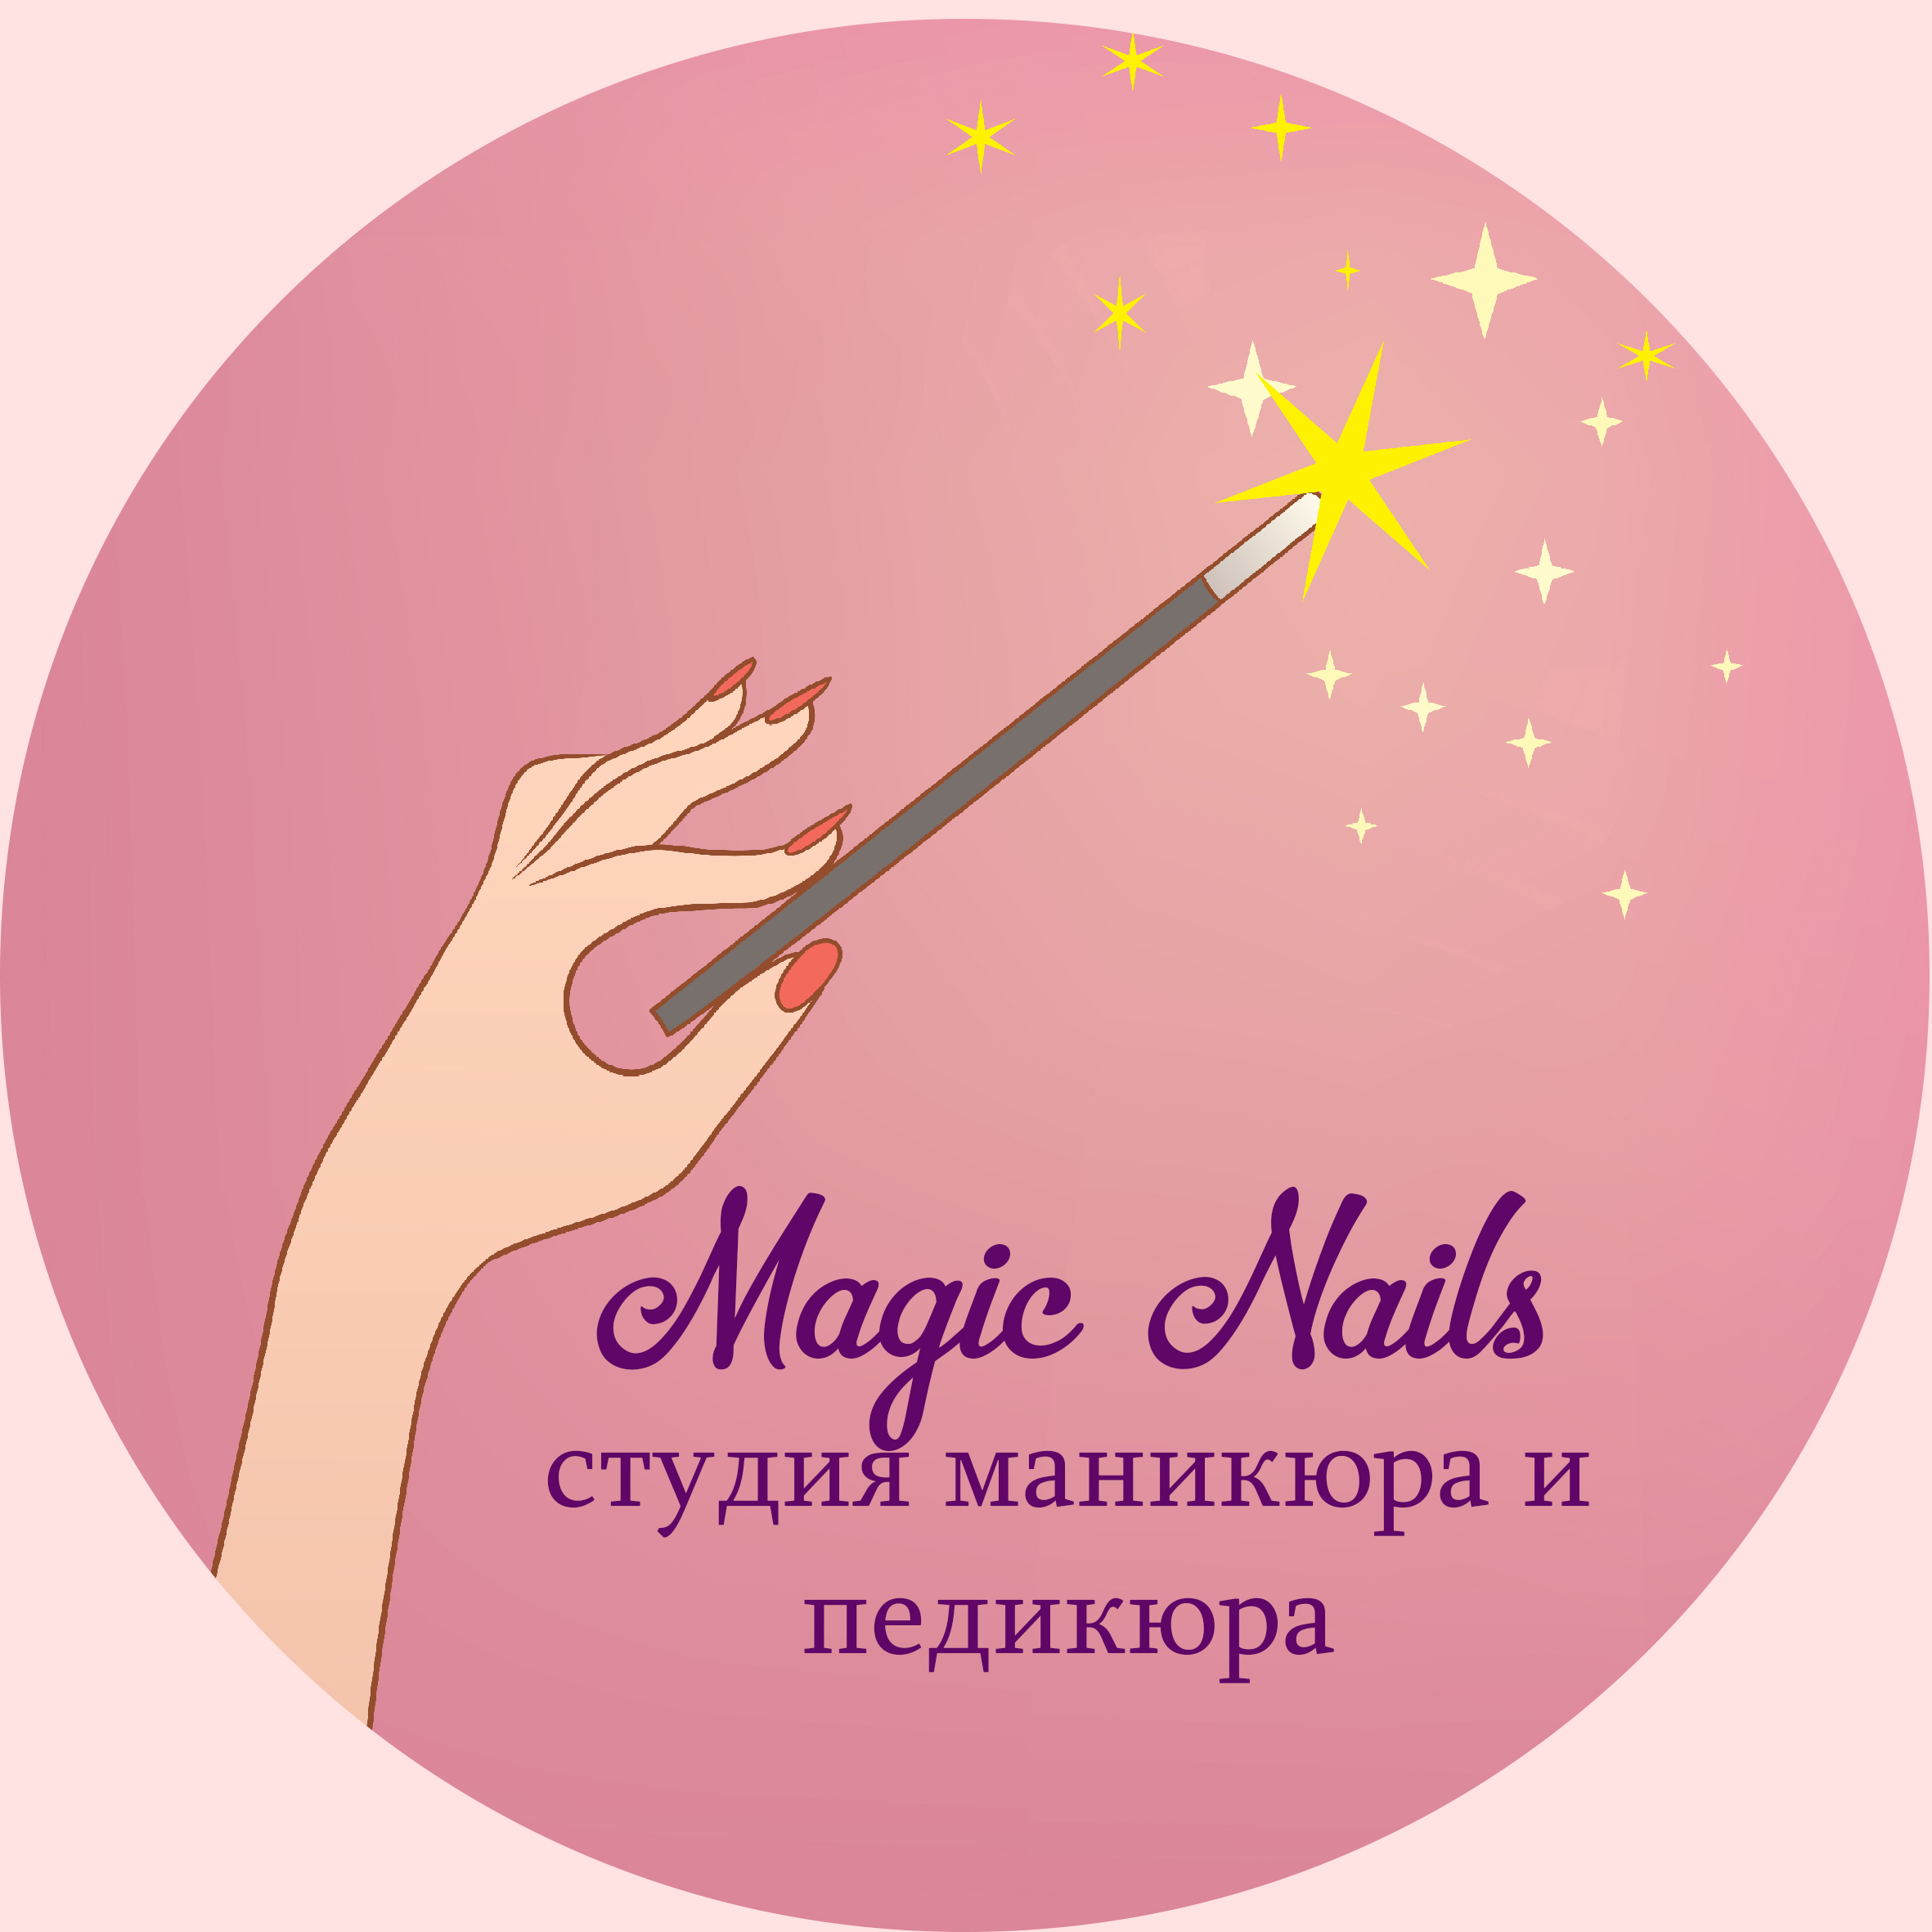 Magic nails & day spa